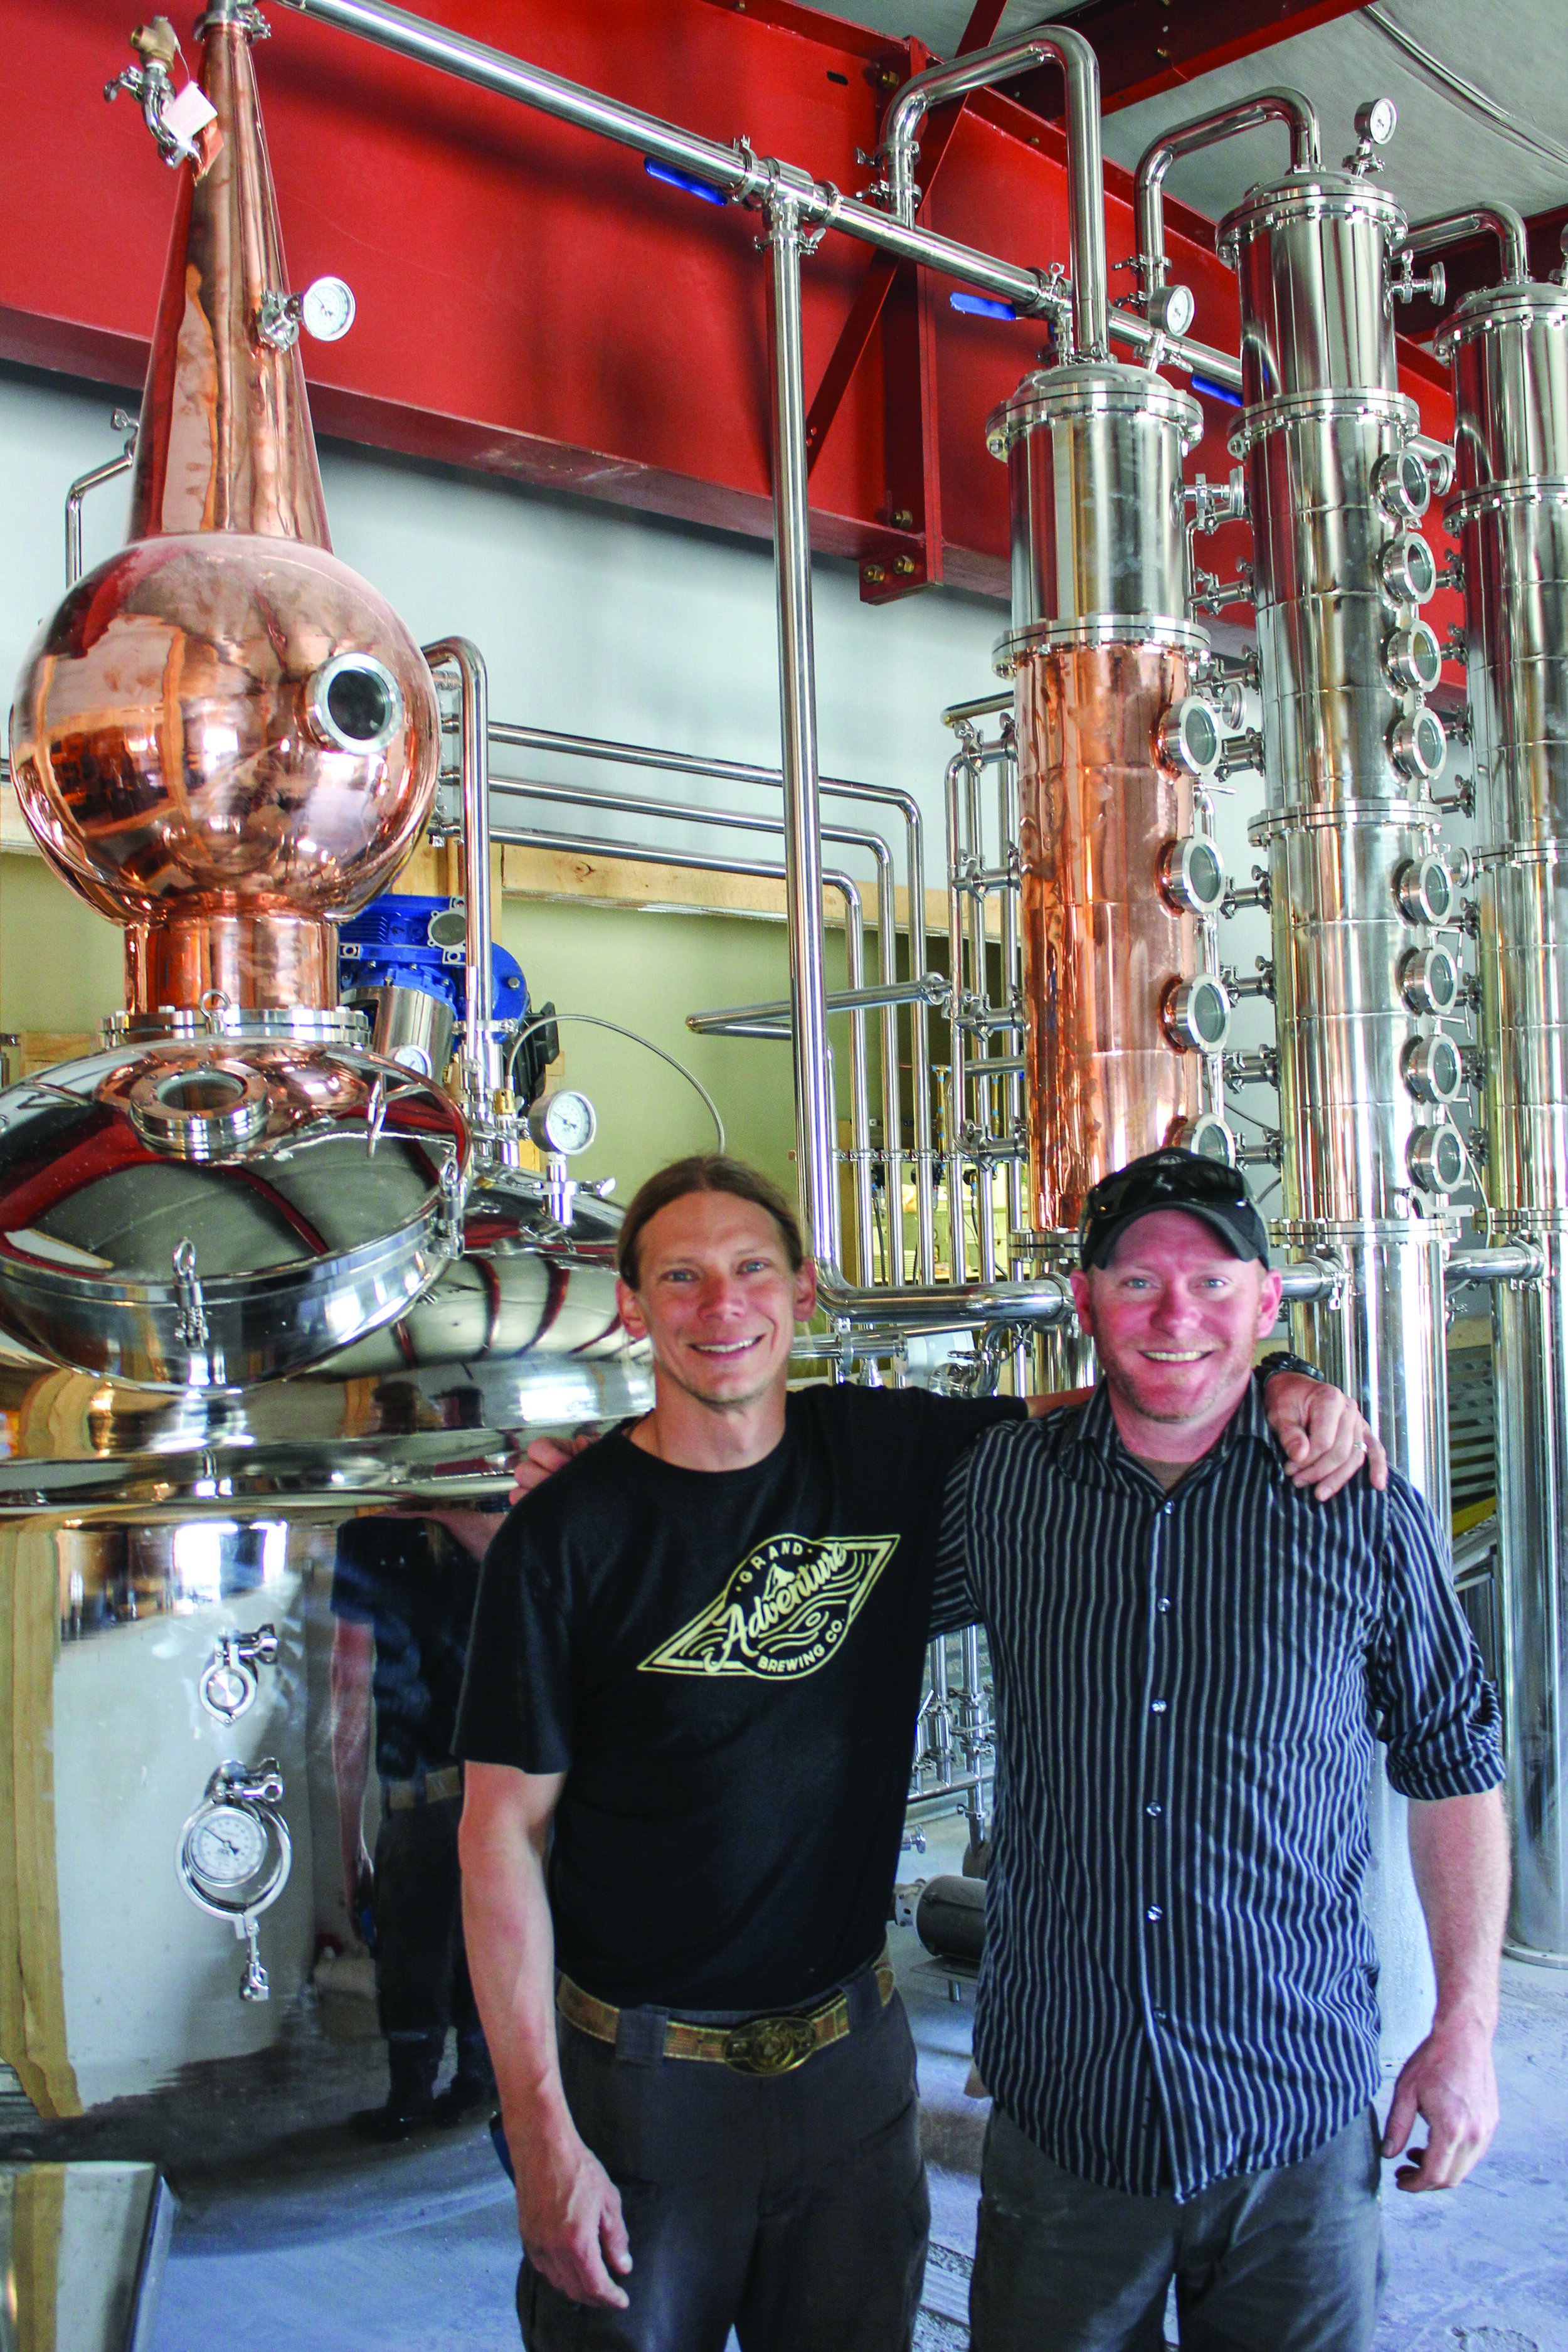 Grand Adventure Brewing Co. founder and brewer Rick Reliford, left, poses with The Dean West restaurant's Jon Harvey. They have combined efforts with distiller Red Waldron to provide craft brew, food and spirits under one roof in Kremmling.